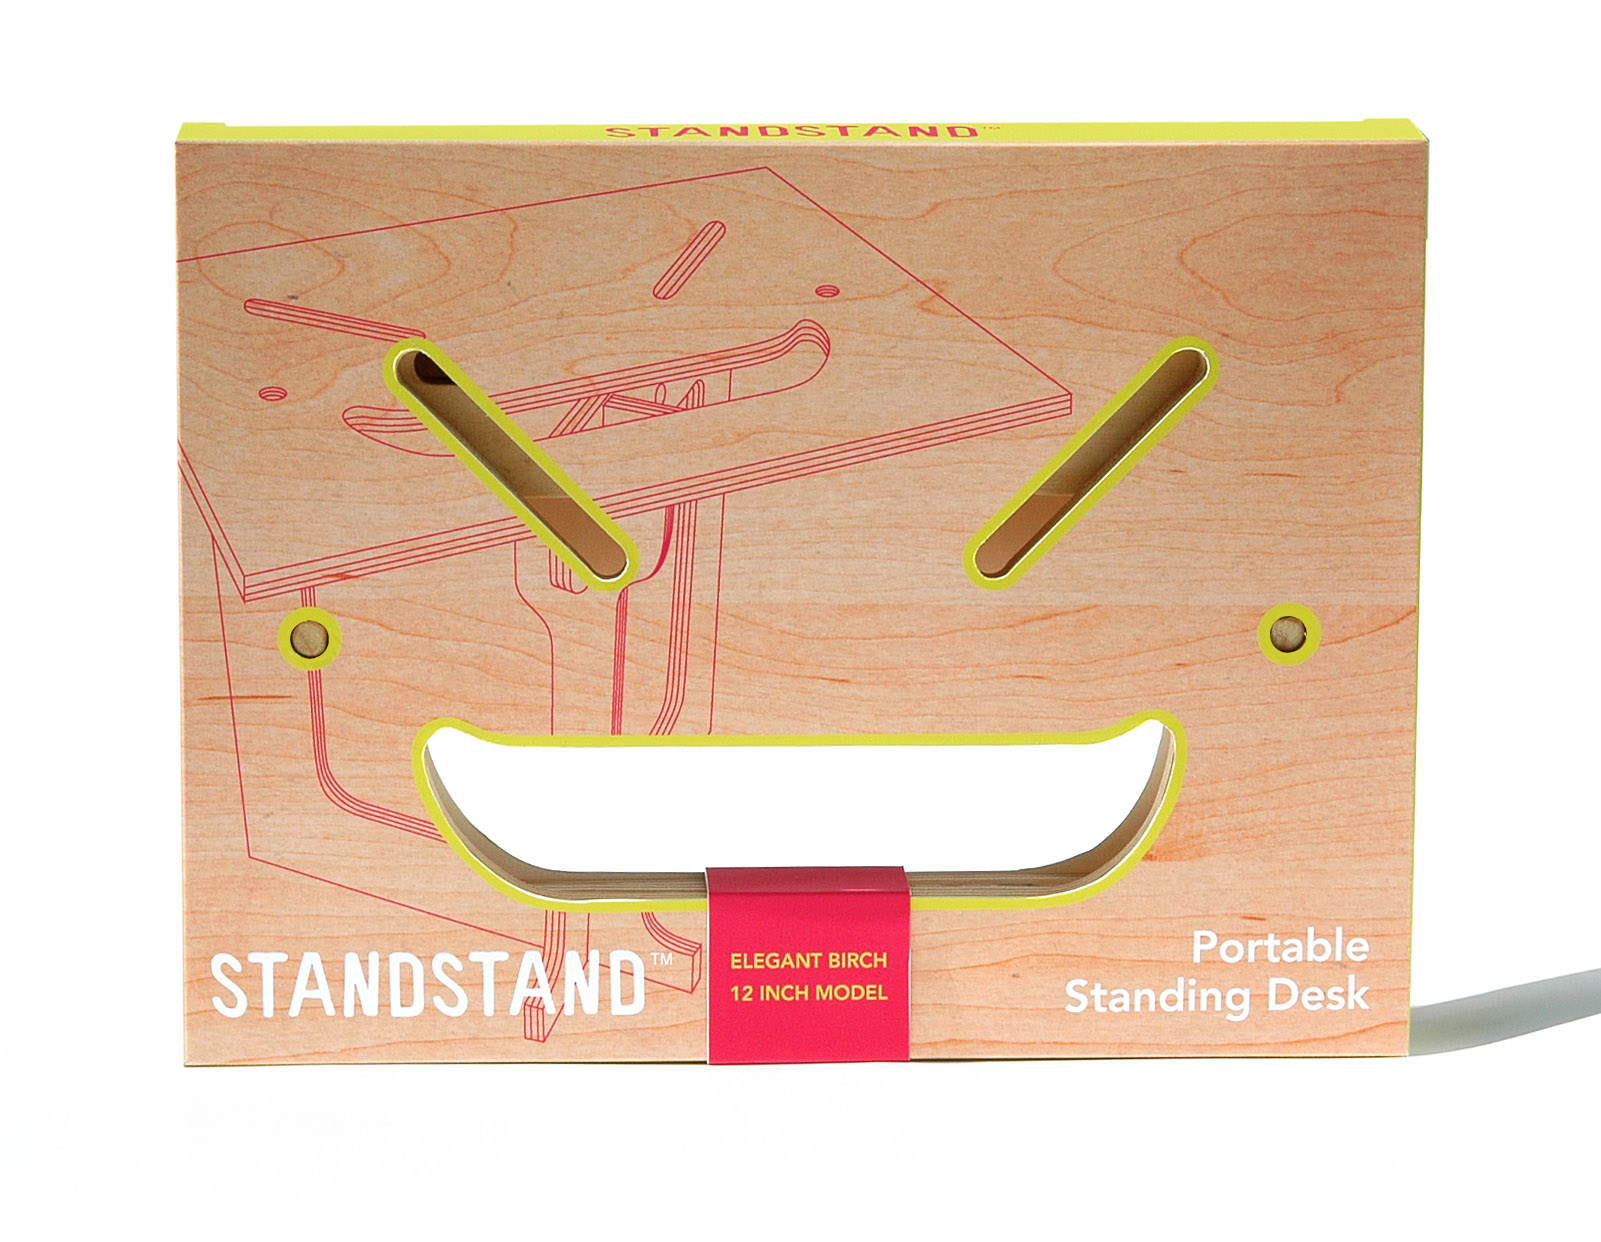 StandStand packaging